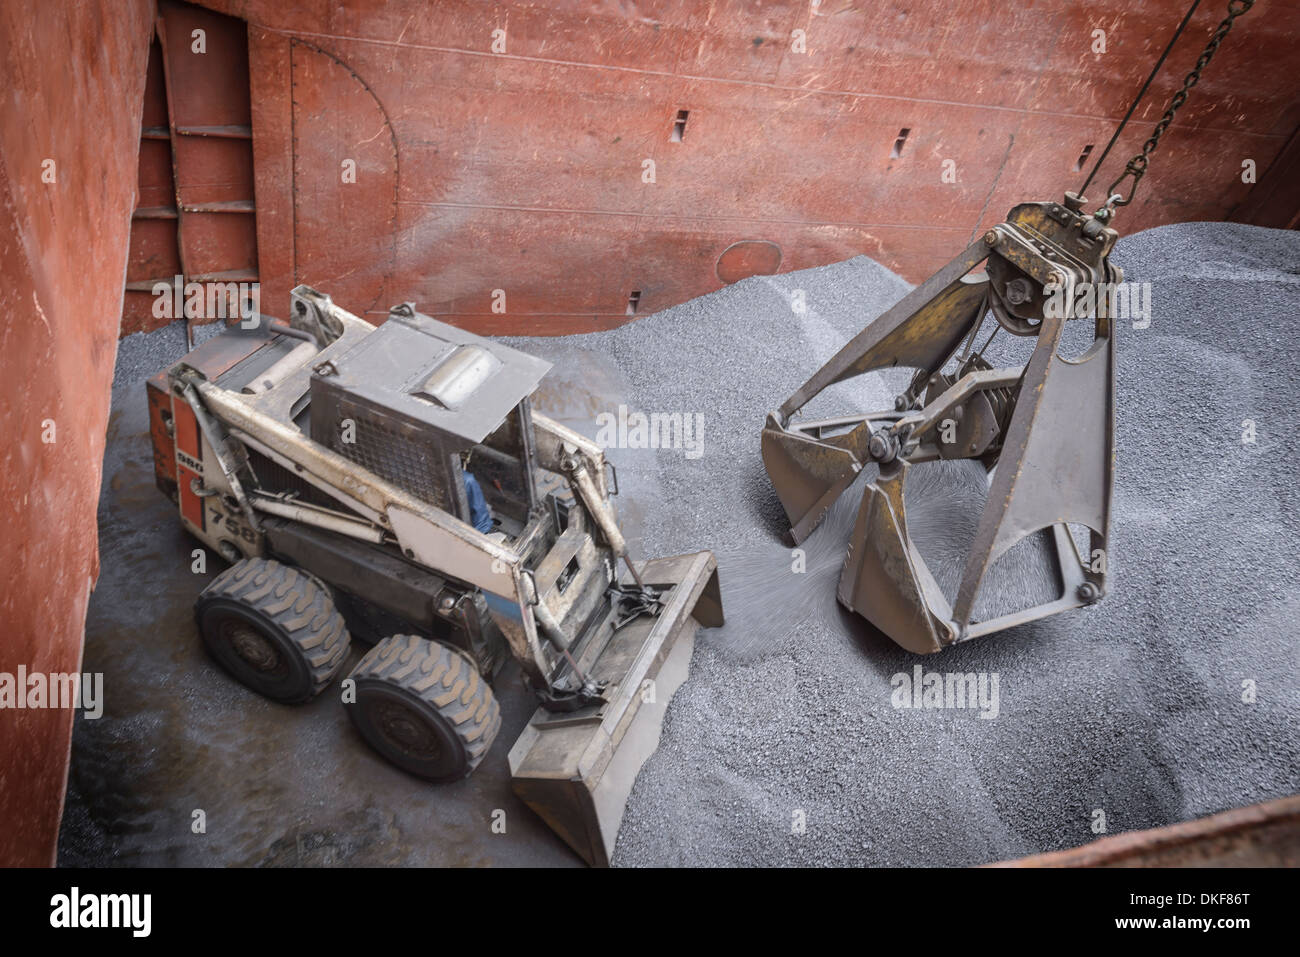 High angle view of digger and grab unloading metal alloy in ship's hull - Stock Image